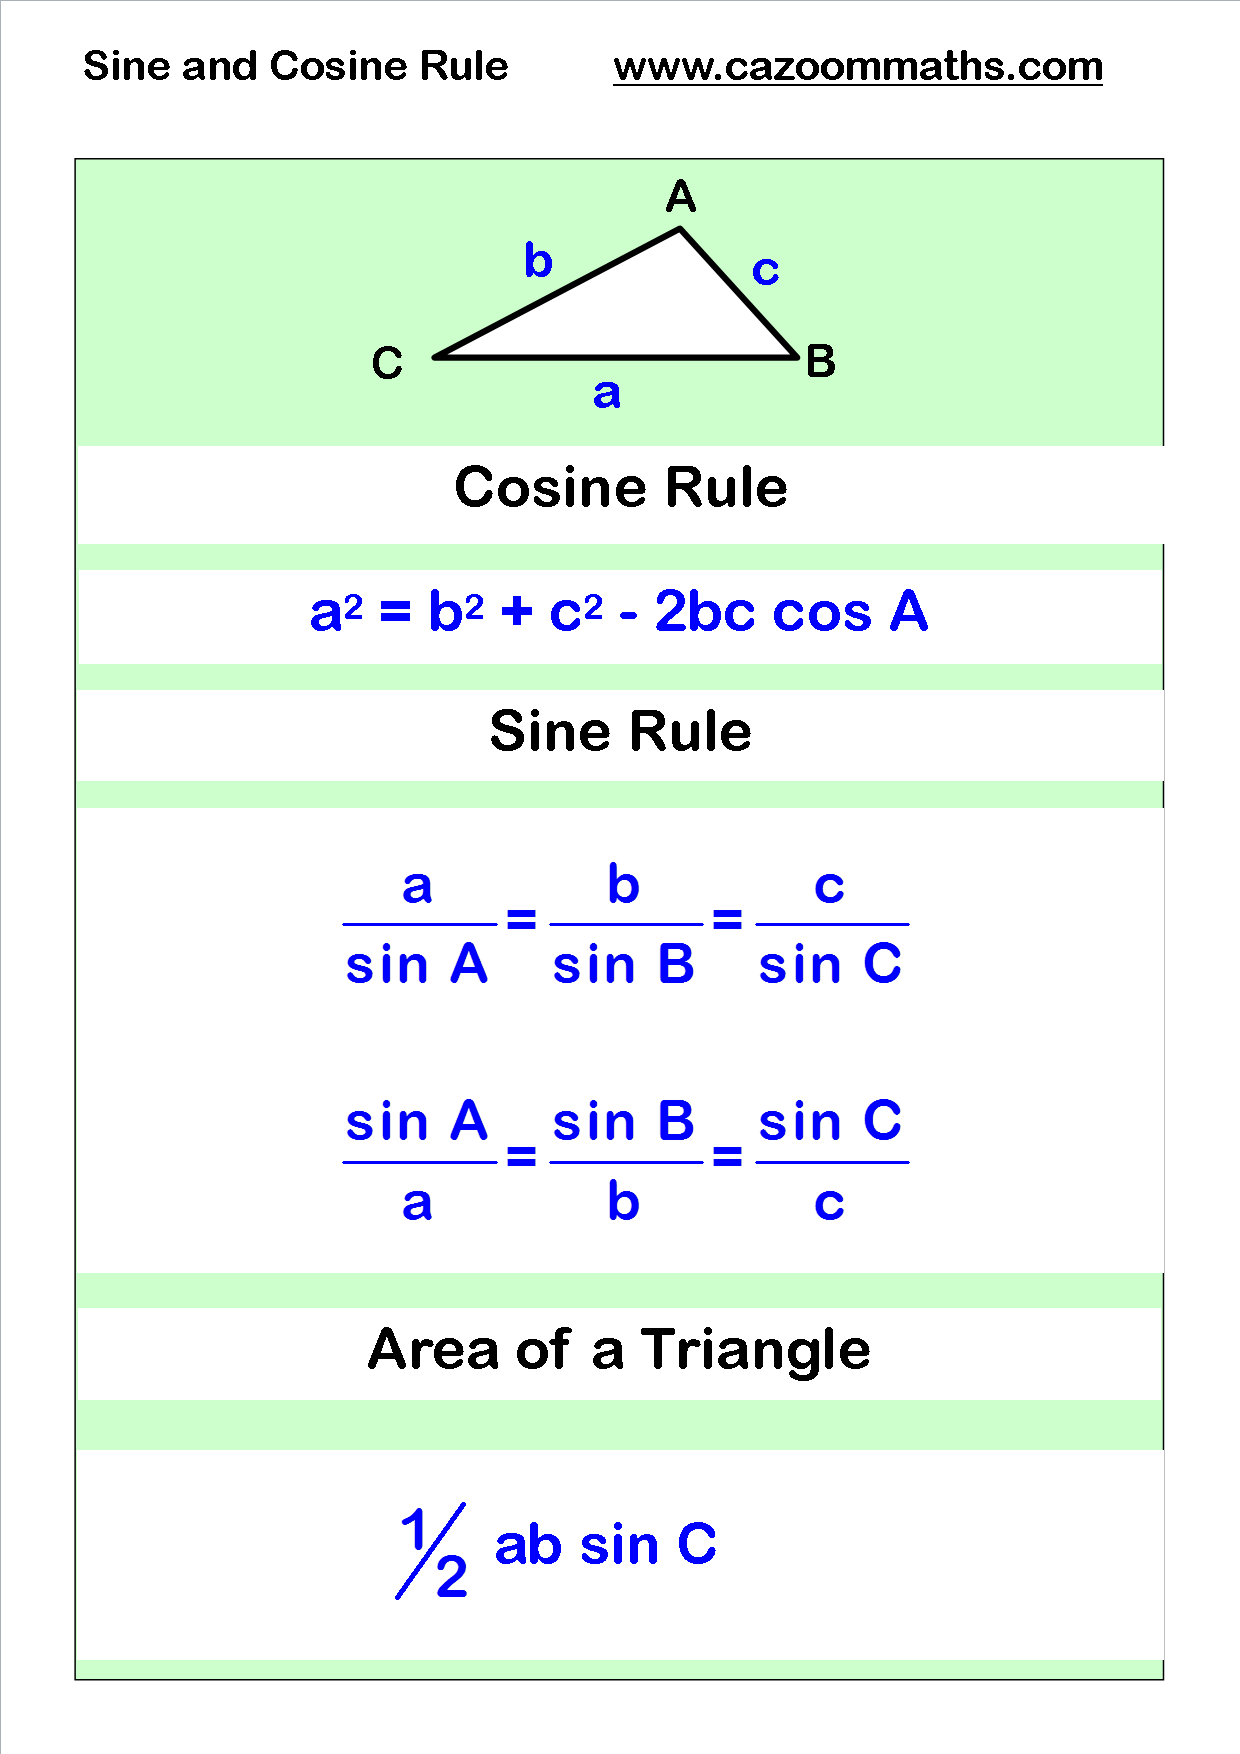 worksheet Sat Math Worksheets cosine and sine rule sat math pinterest trigonometry rule